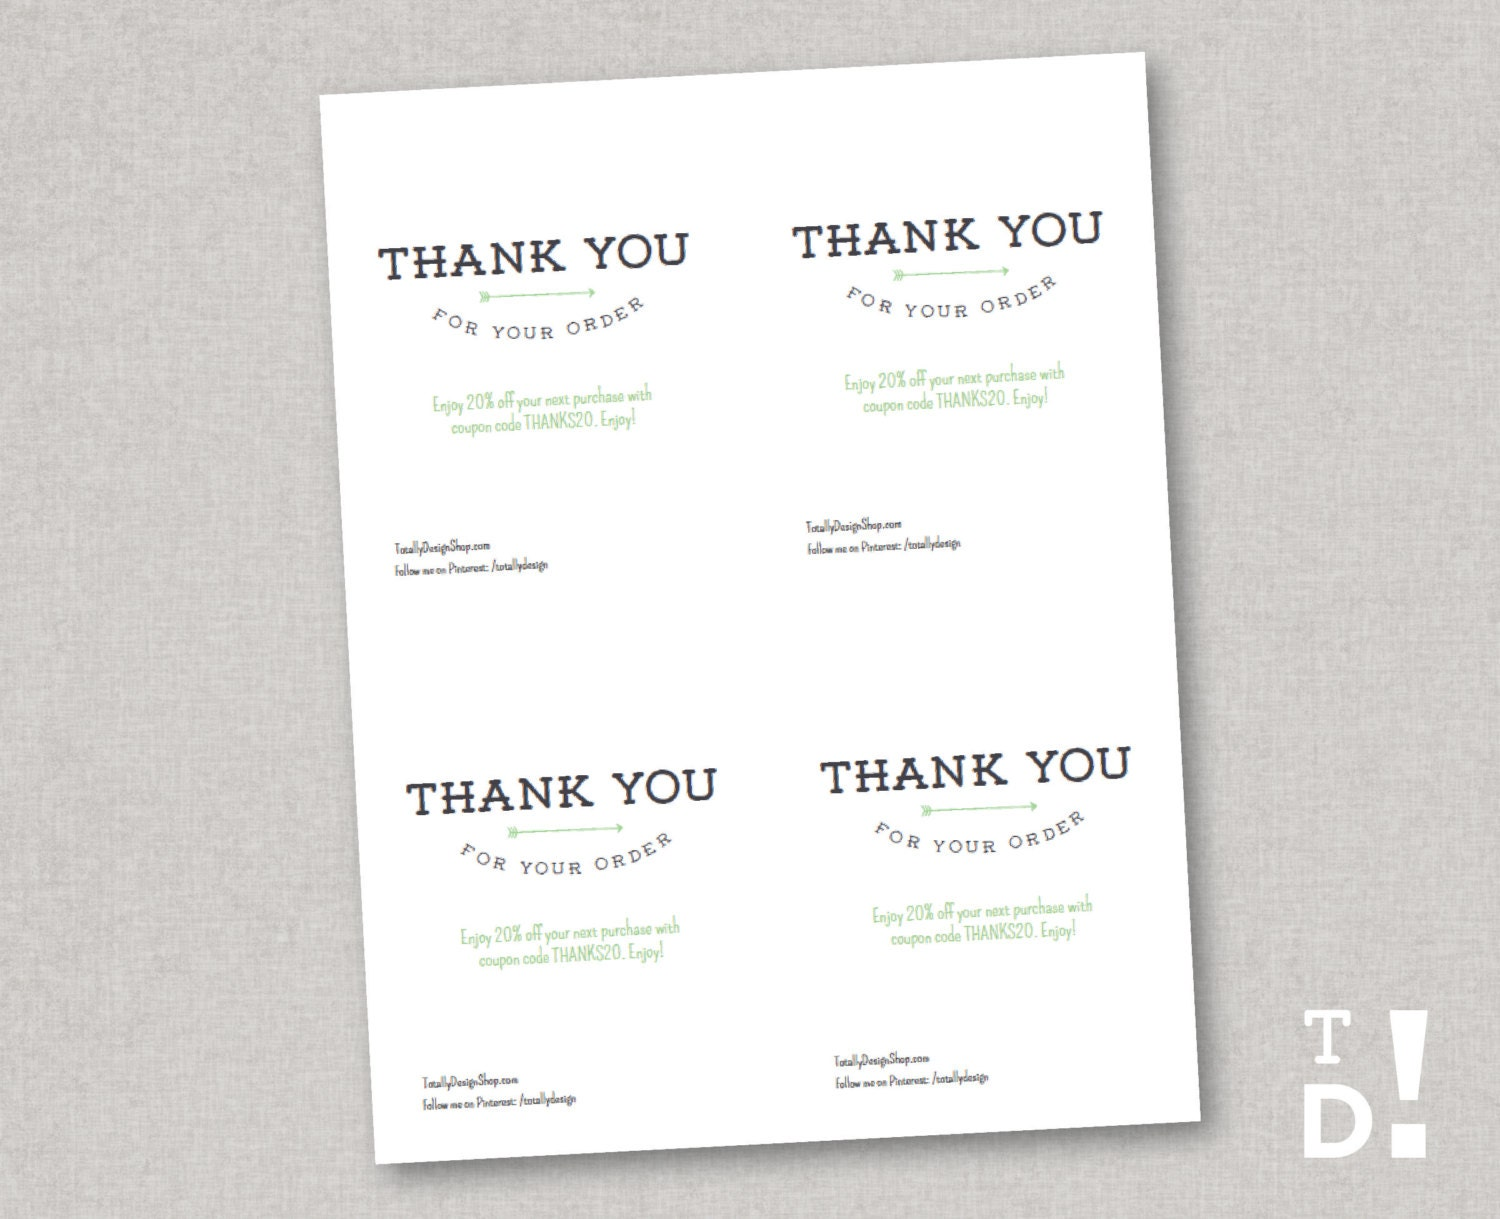 It's just a photo of Trust Thank You for Your Purchase Printable